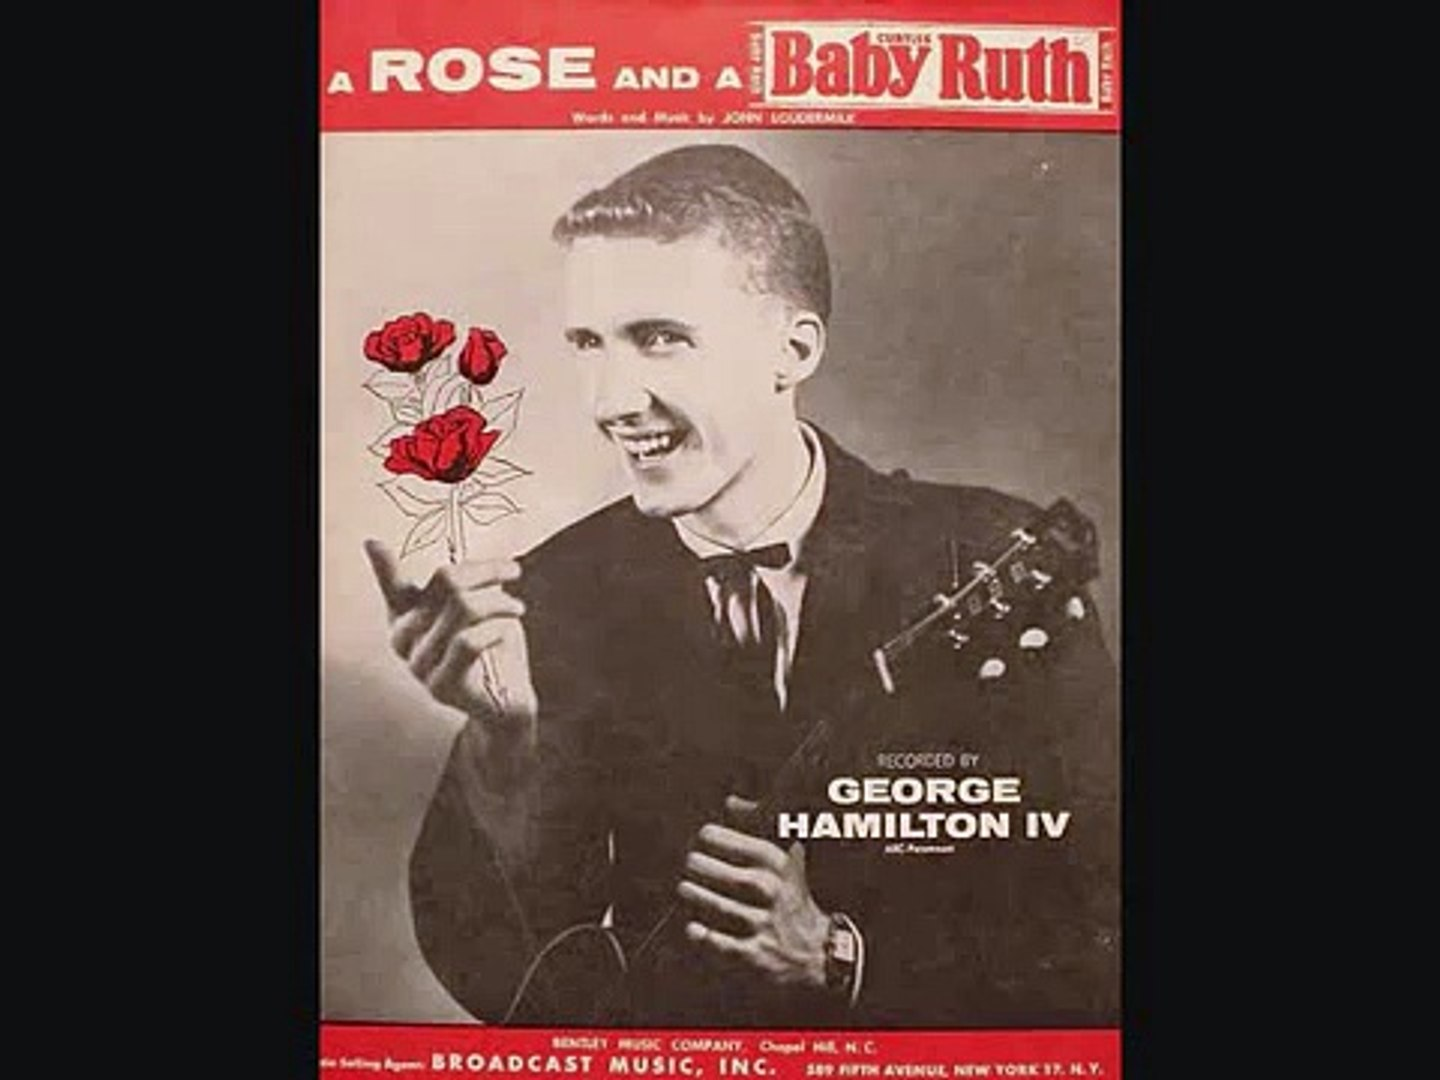 George Hamilton IV - A Rose and a Baby Ruth (1956)